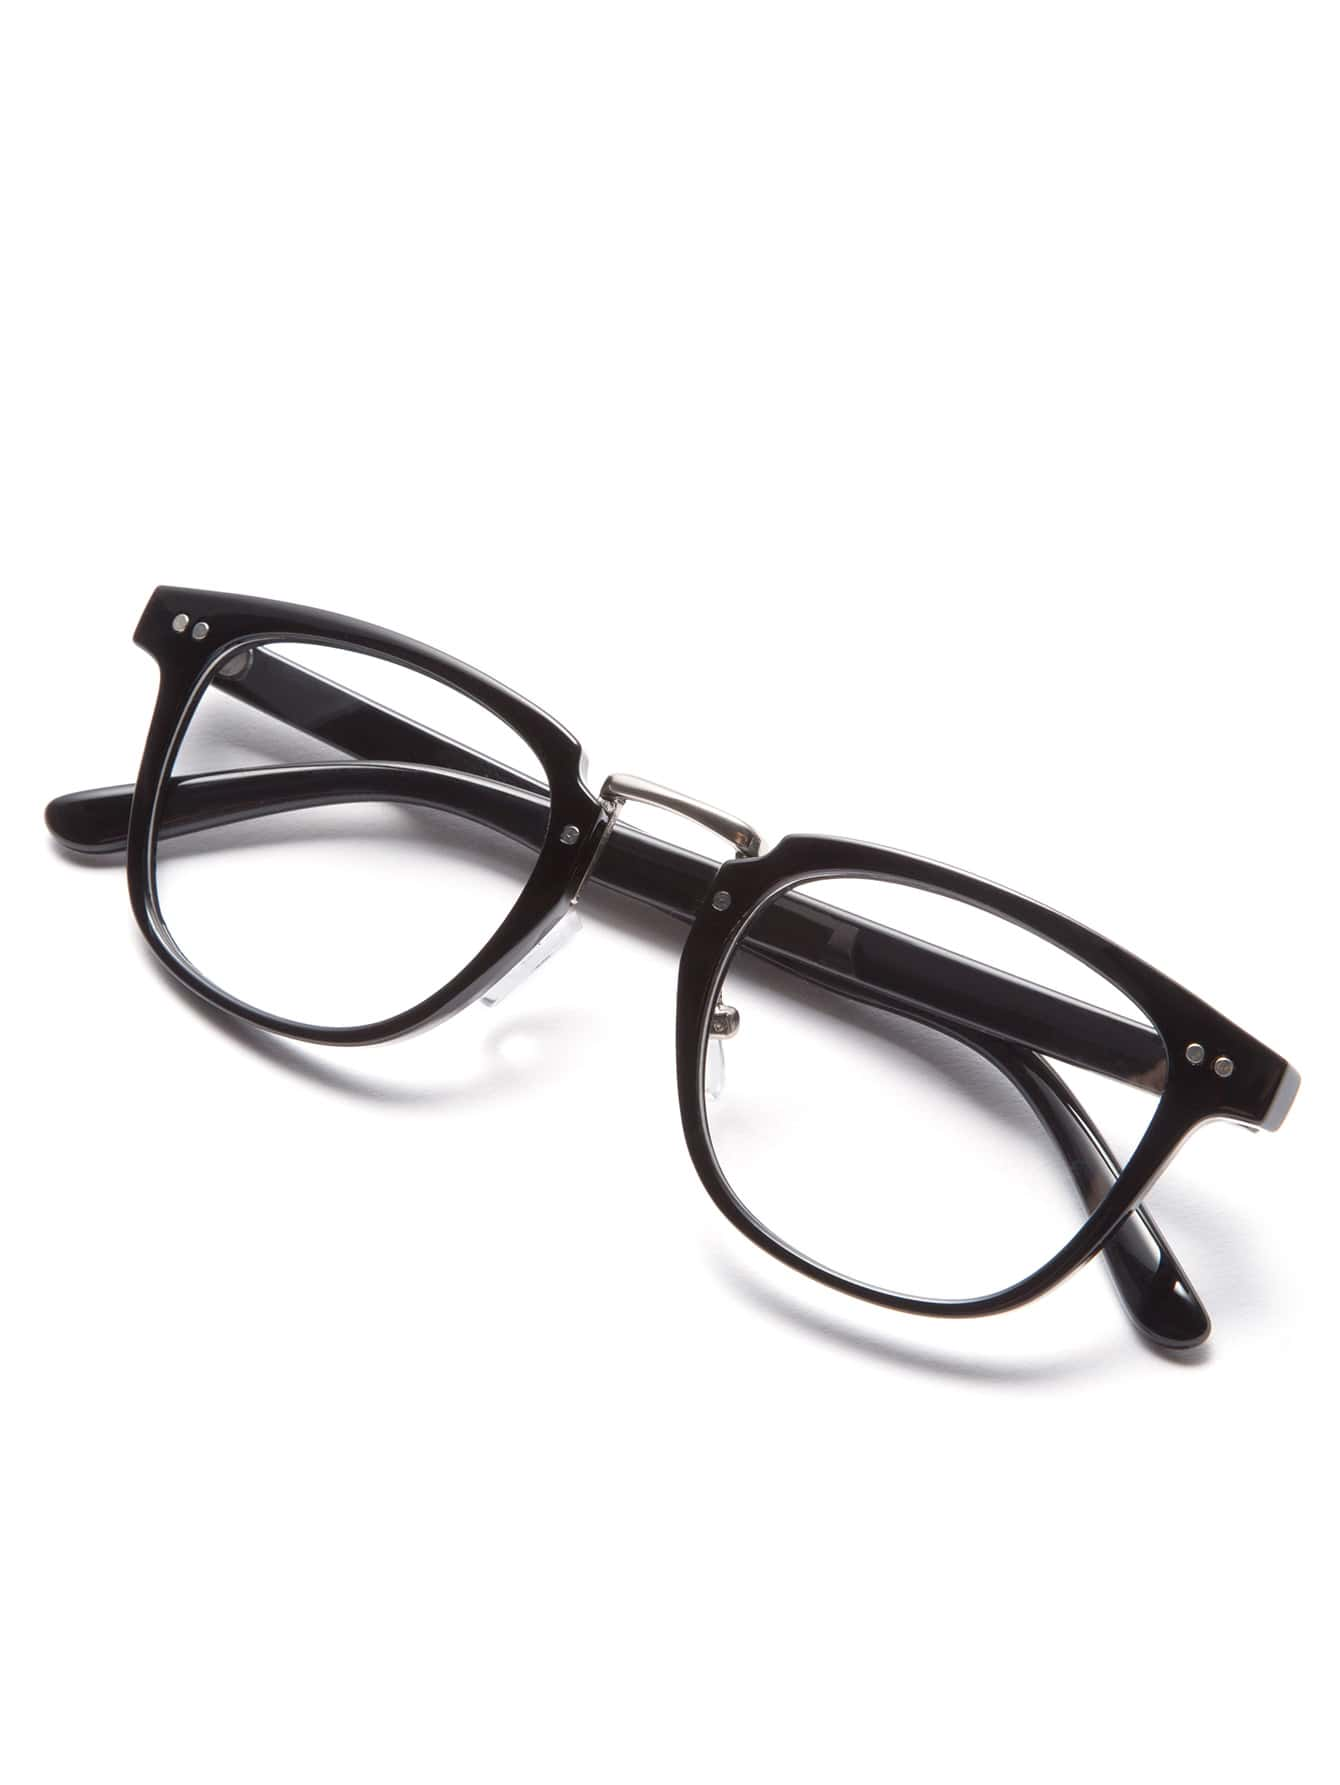 Black Frame Glasses Clear Lens : Black Frame Clear Lens Glasses -SheIn(Sheinside)